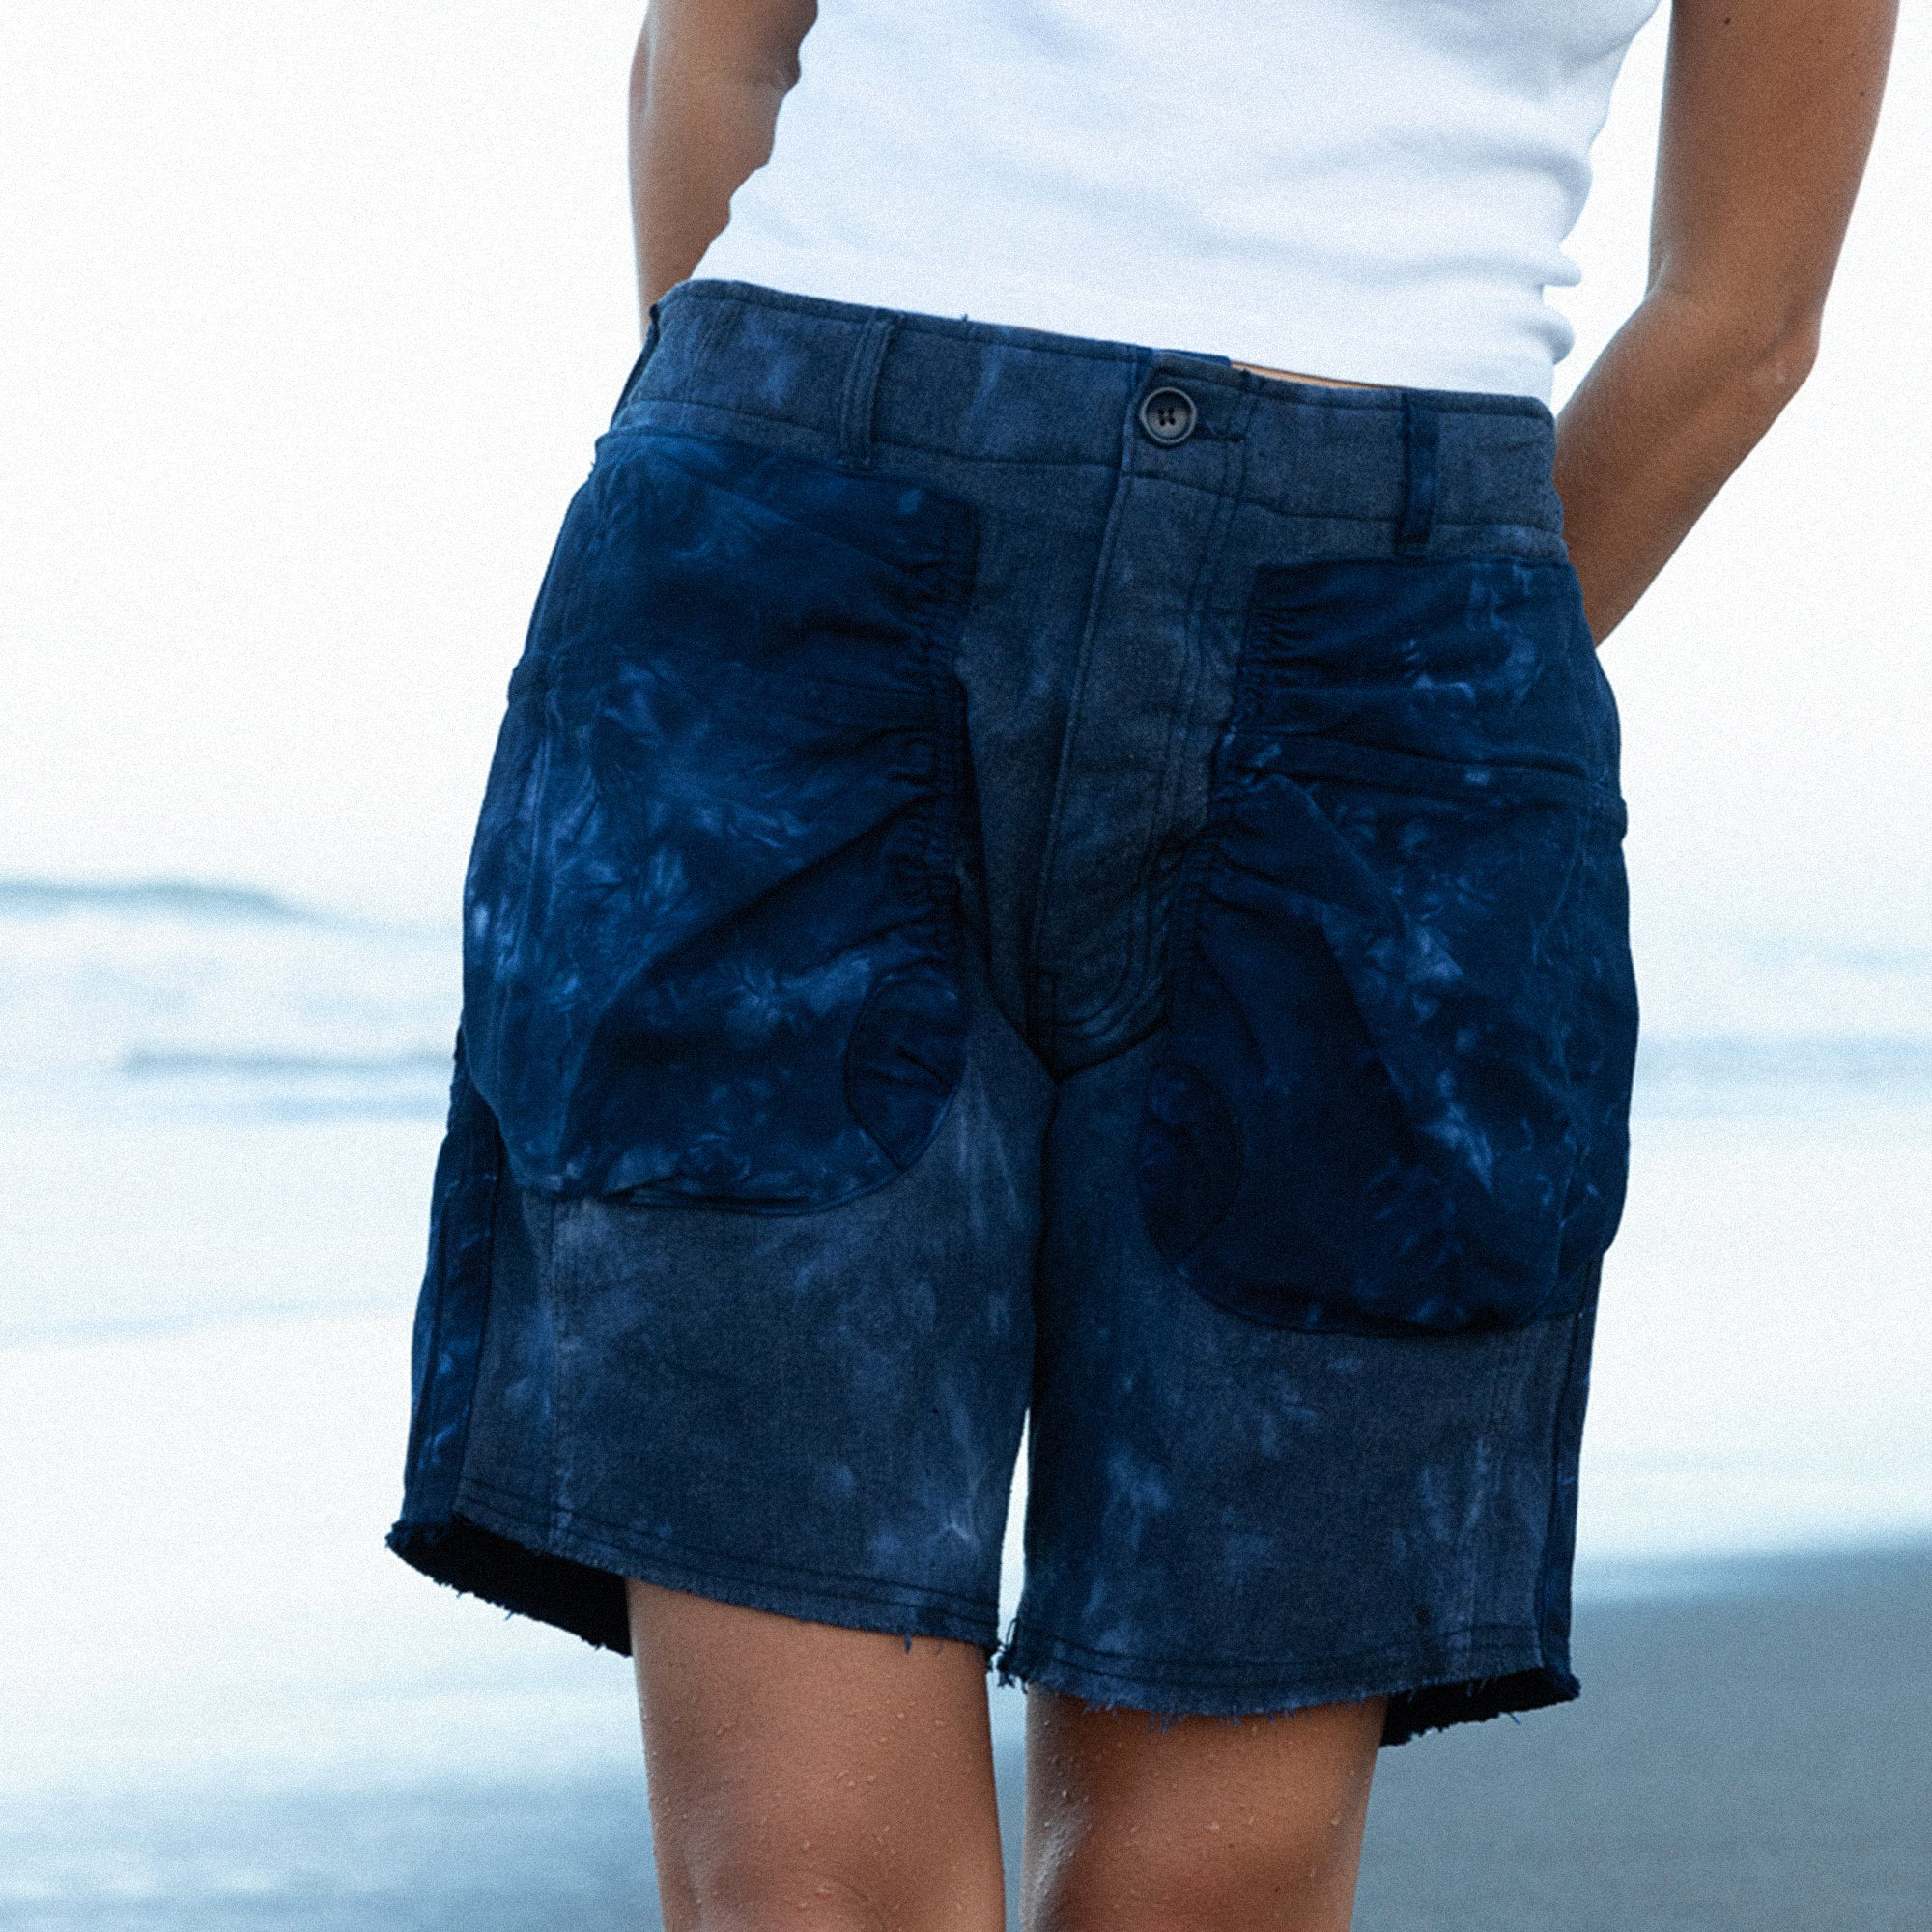 Closely cropped image of person wearing Recraft shorts in front of the ocean.